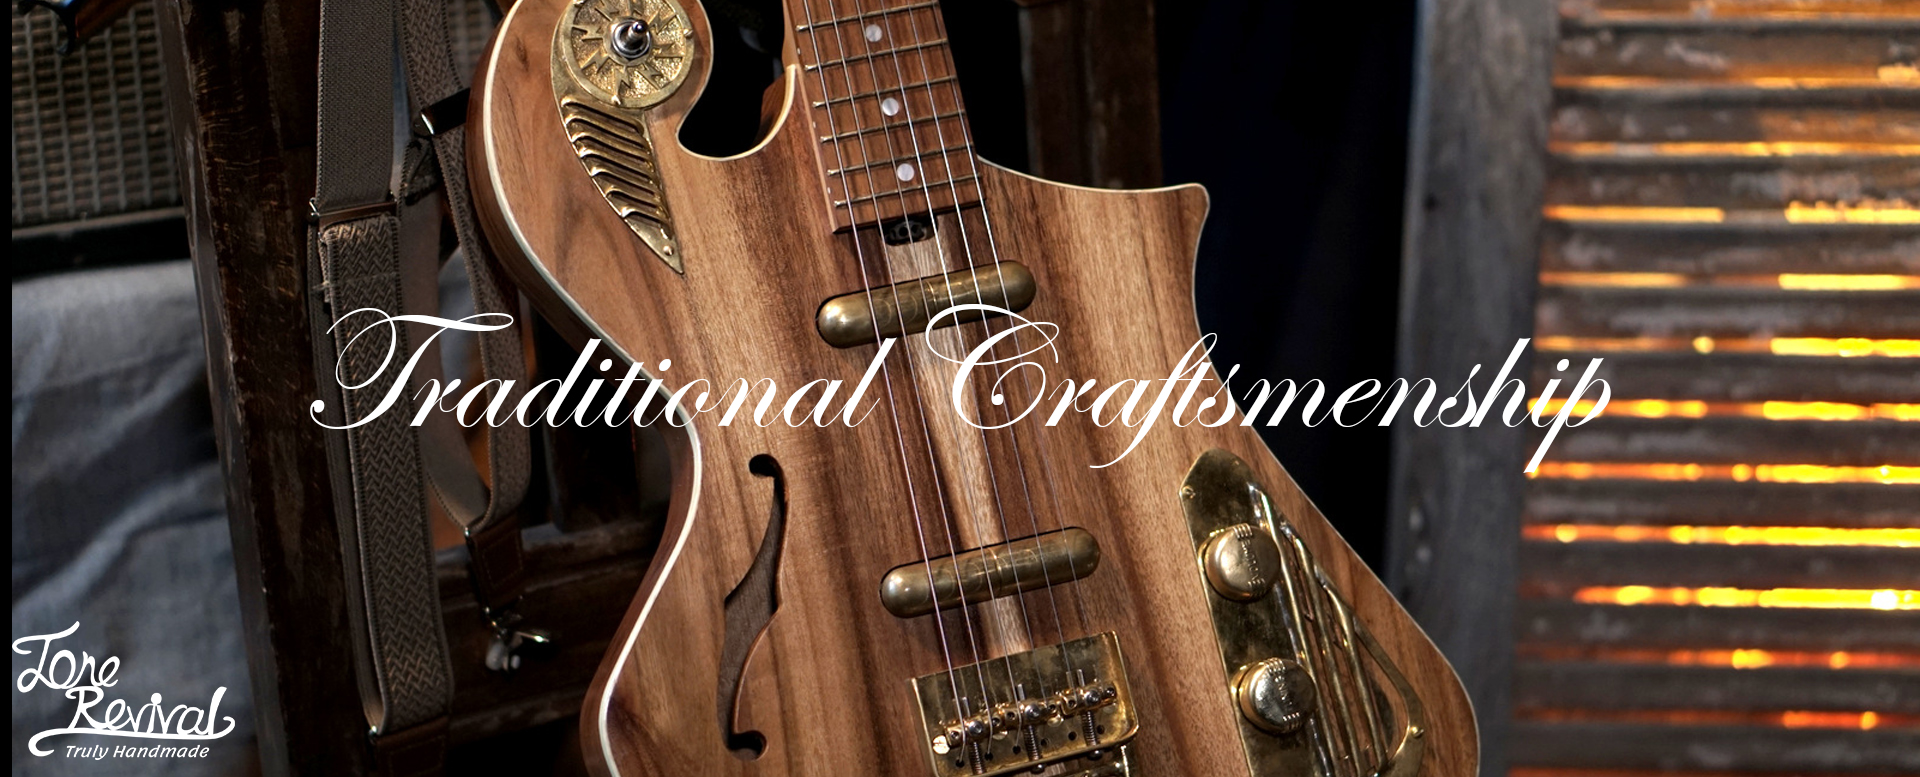 unique guitars - traditional crafsmanship by Tone Revival Guitars